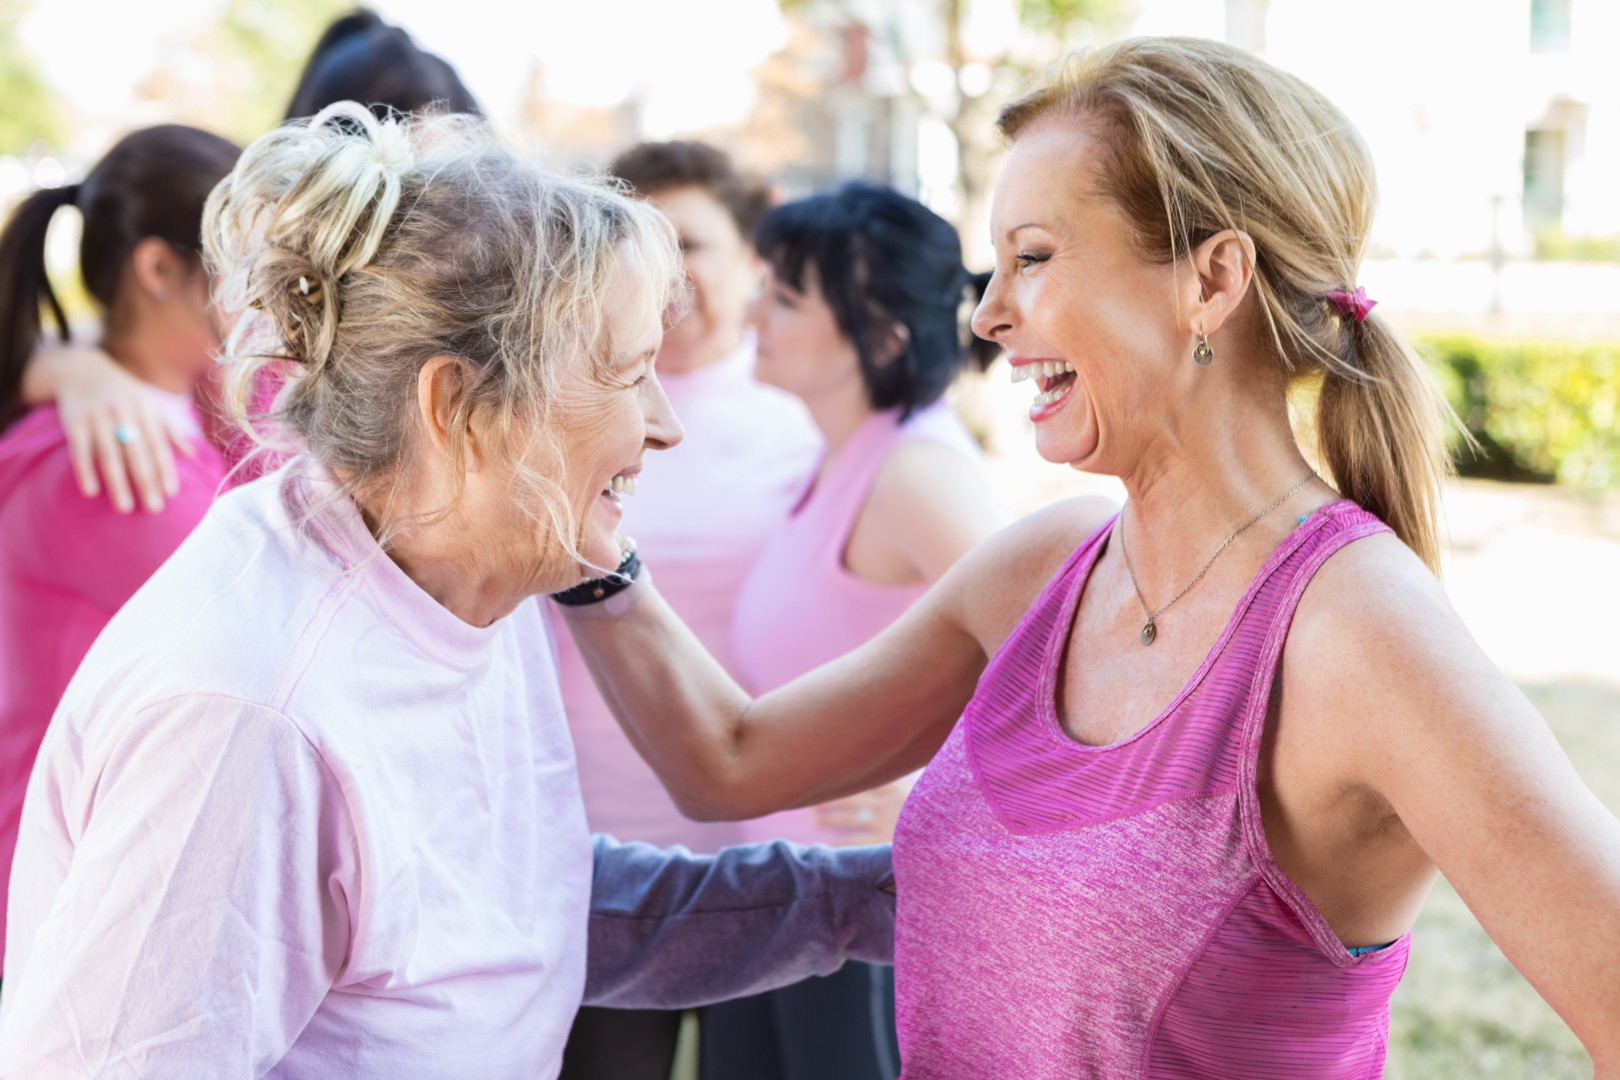 Pretty senior female friends laugh and enjoy one anothers' company after finishing breast cancer charity 5k race. One woman has her hand on the othe woman's shoulder as they laugh. People are talking in the background. The women are wearing pink work out clothing.